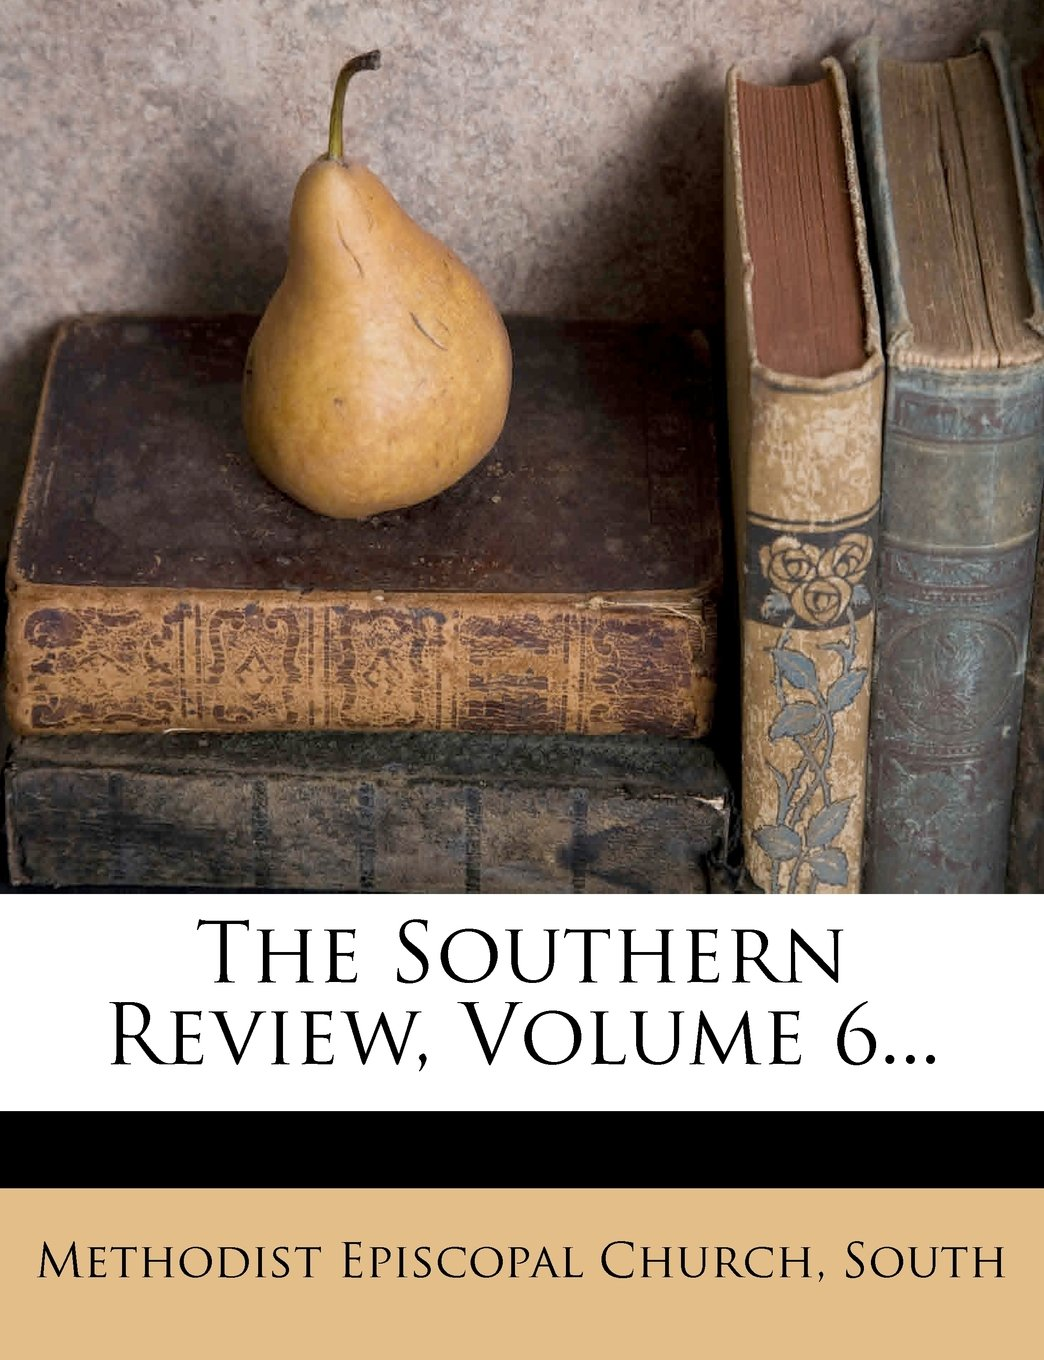 Download The Southern Review, Volume 6... Text fb2 ebook